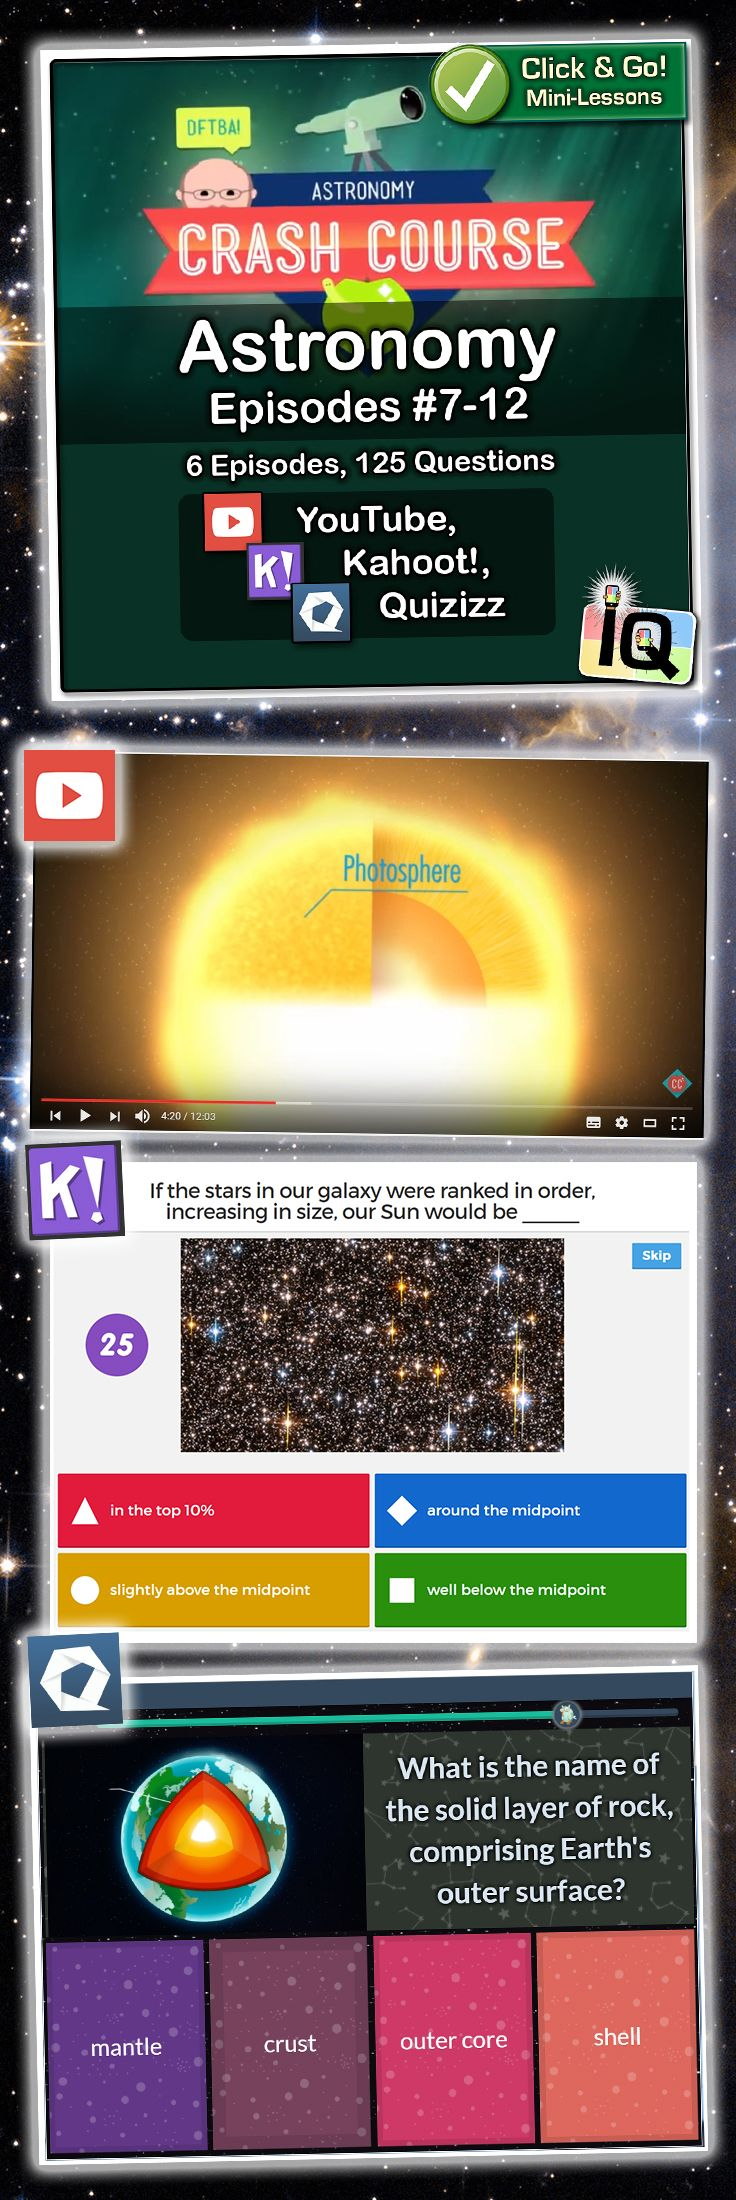 Point and Click for instant Mini-Lessons with Game-Based Assessment!   ?   https://www.teacherspayteachers.com/Product/Crash-Couse-Astronomy-7-12-Interactive-Quizzes-2924060    ?  Game-based learning and assessment with Quizizz and Kahoot!